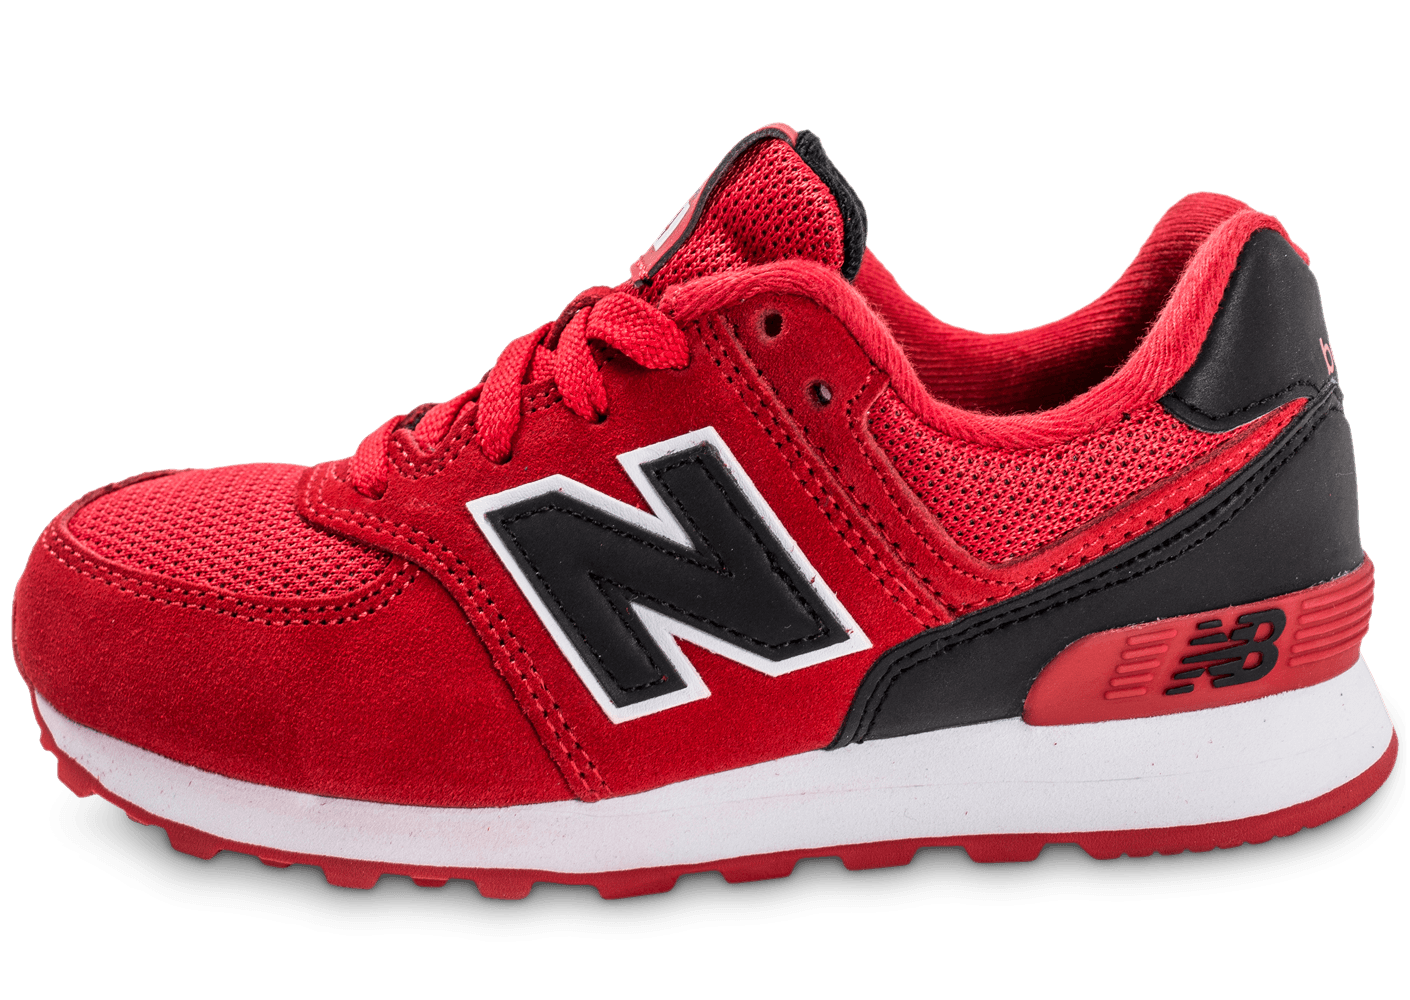 new balance kl574cxp enfant rouge chaussures enfant chausport. Black Bedroom Furniture Sets. Home Design Ideas